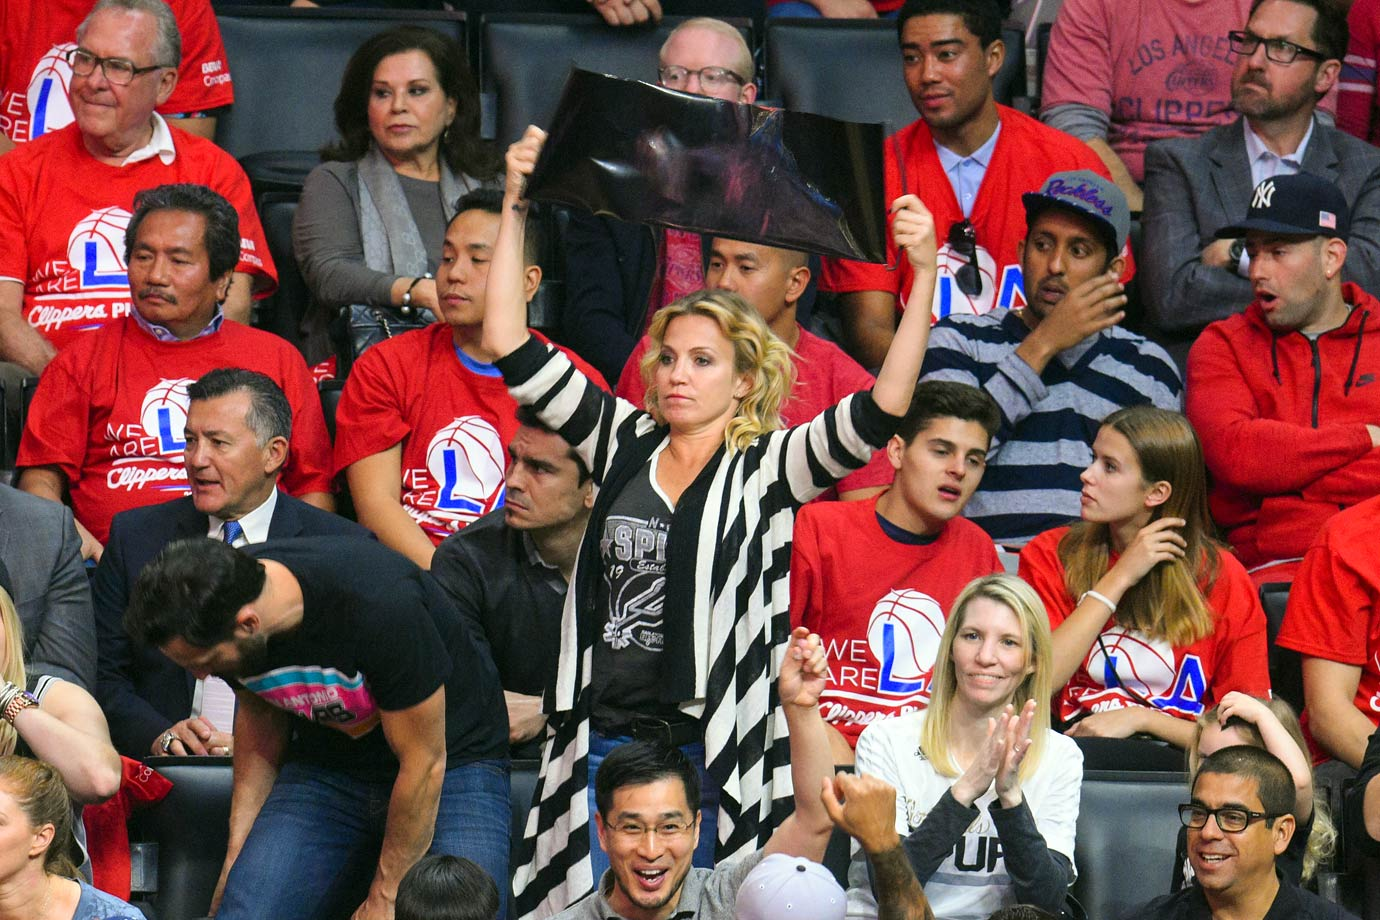 April 19, 2015: Los Angeles Clippers vs. San Antonio Spurs at Staples Center in Los Angeles — Western Conference Quarterfinals, Game 1